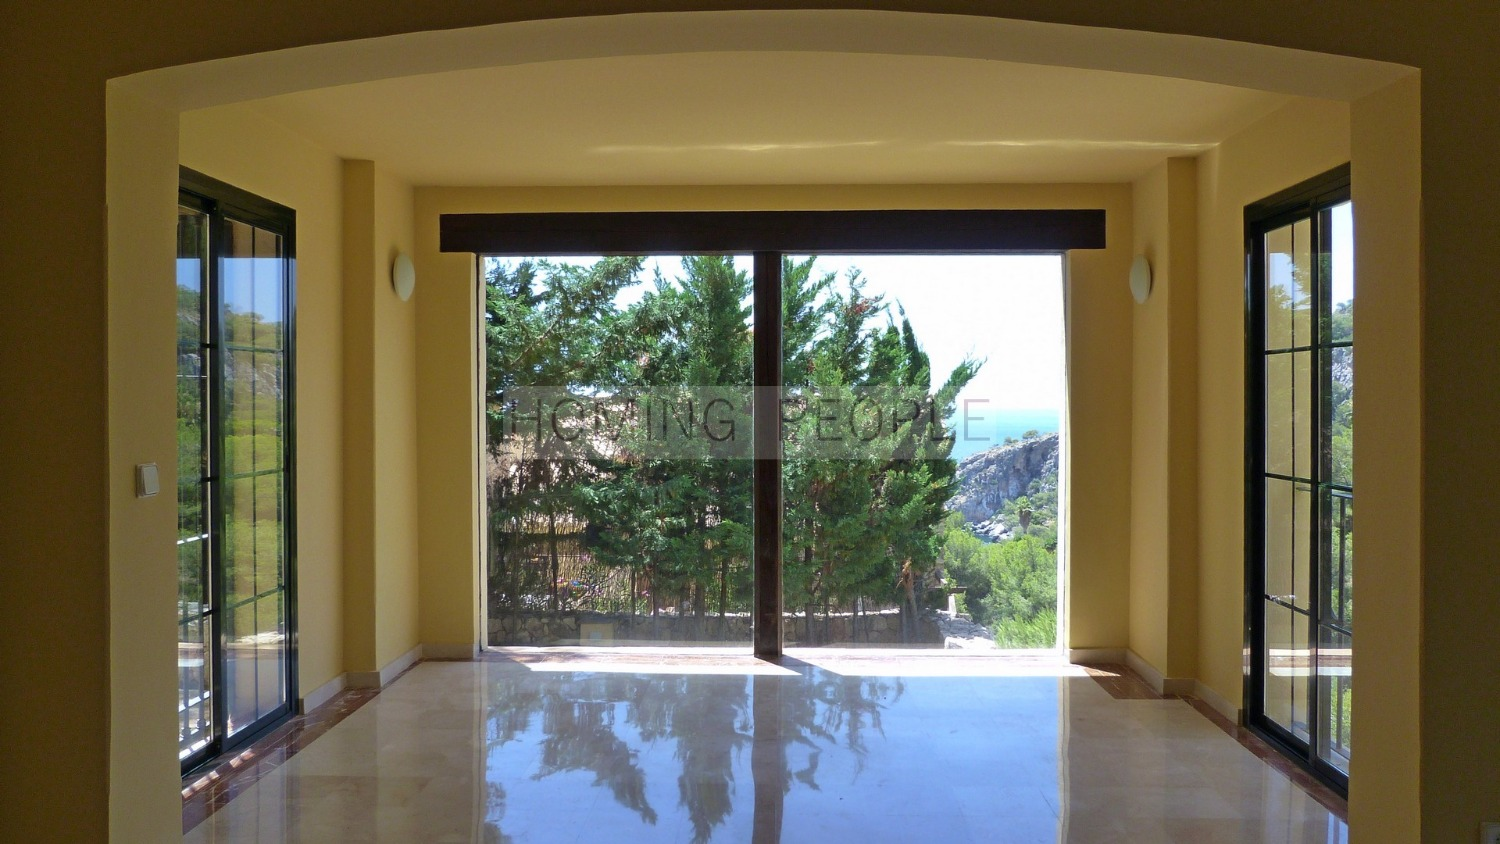 Fantastic opportunity to move into an unfurnished, design villa !